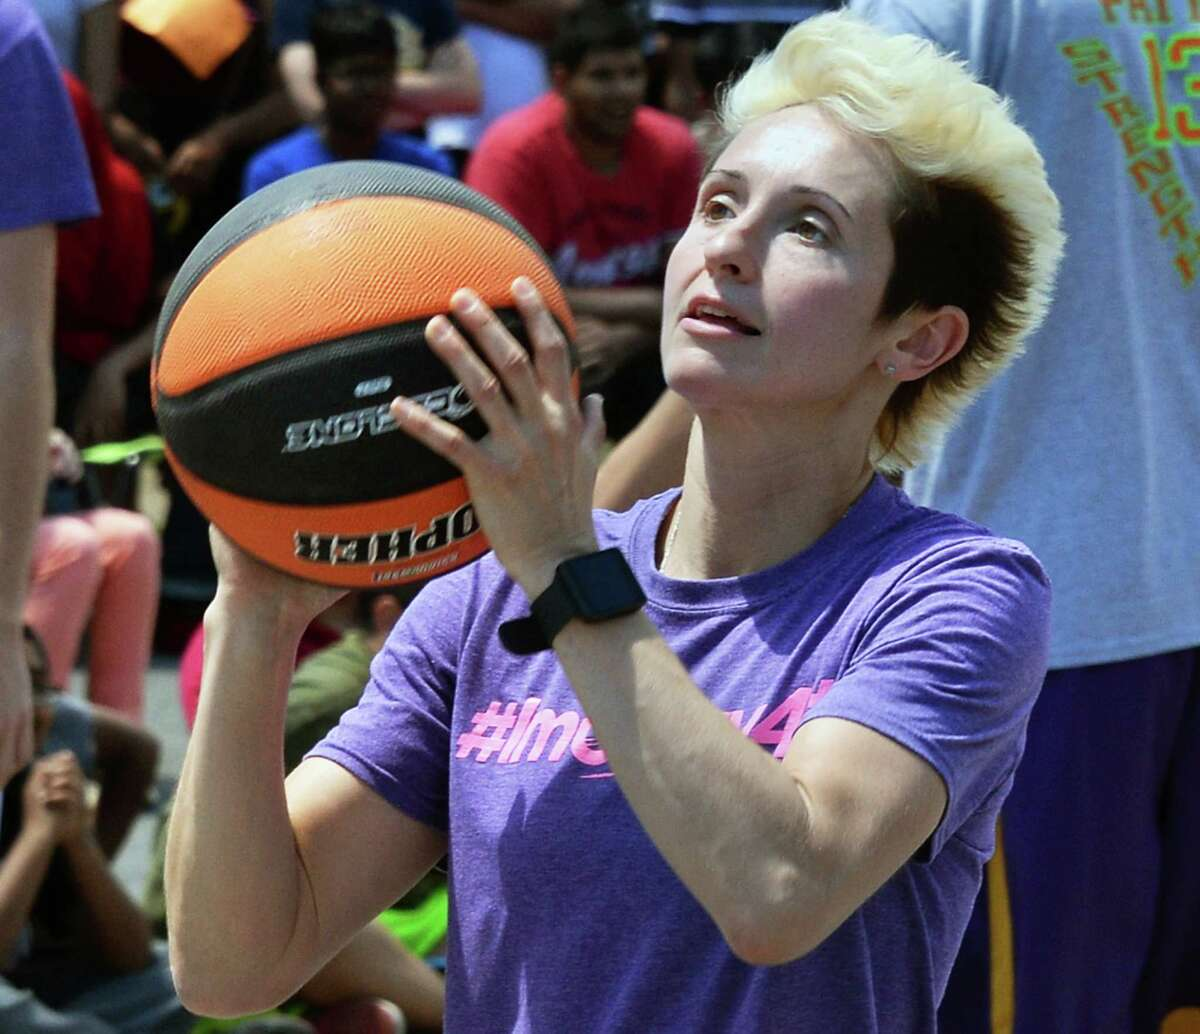 Julie McBride, a former Mechanicville HS hoops star puts on a show for Martin Luther King School students Friday June 17, 2016 in Schenectady, NY. (John Carl D'Annibale / Times Union)